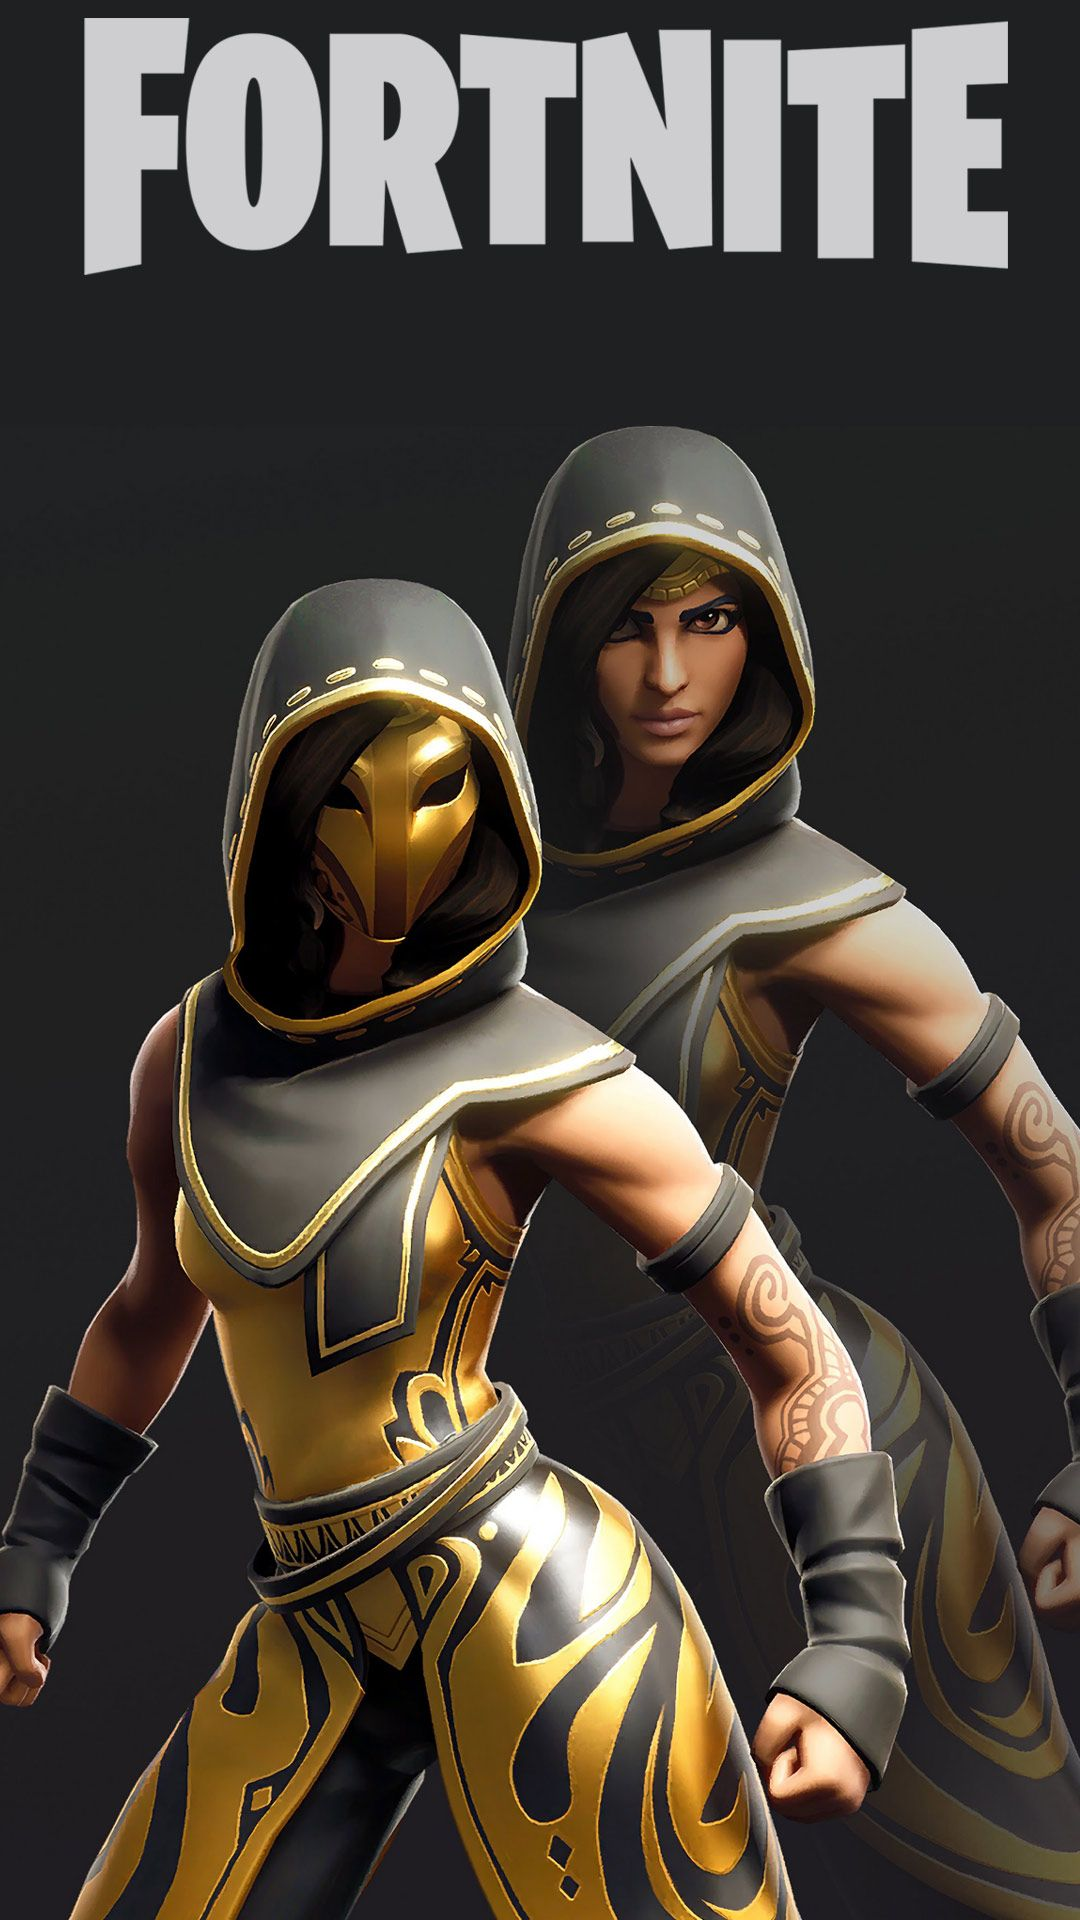 Fortnite is the popular co-op sandbox action survival game, Get some Fortnite sandstorm skin HD images as iPhone android wallpaper phone backgrounds for lock screen Poster art #Fortnite #game #Fortniteskin #sandstormskin #Fortnitesandstorm #android #phone #wallpaper #backgrounds #download #MobileWallpaper #AndroidWallpaper #iphonewallpaper